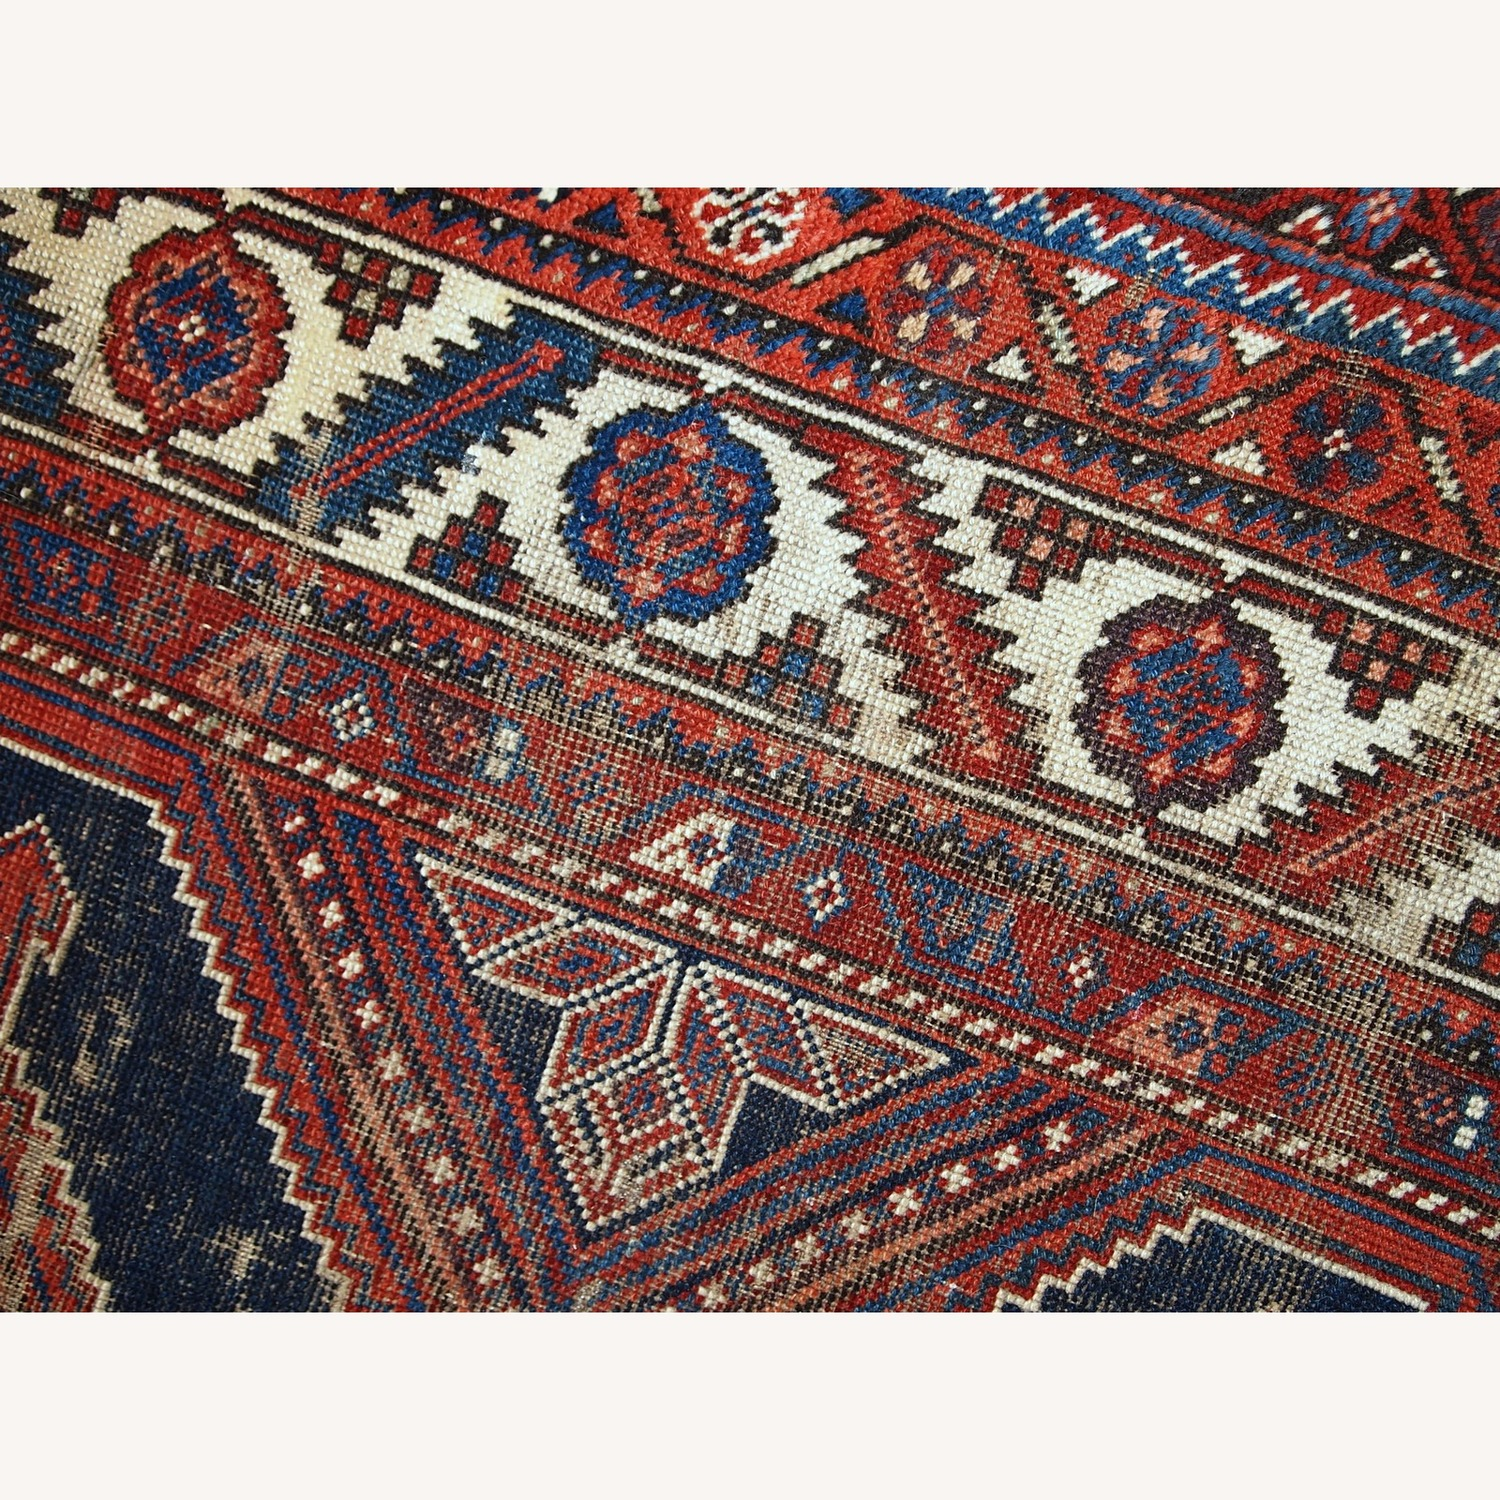 Handmade Antique Distressed Persian Shiraz Rug - image-2